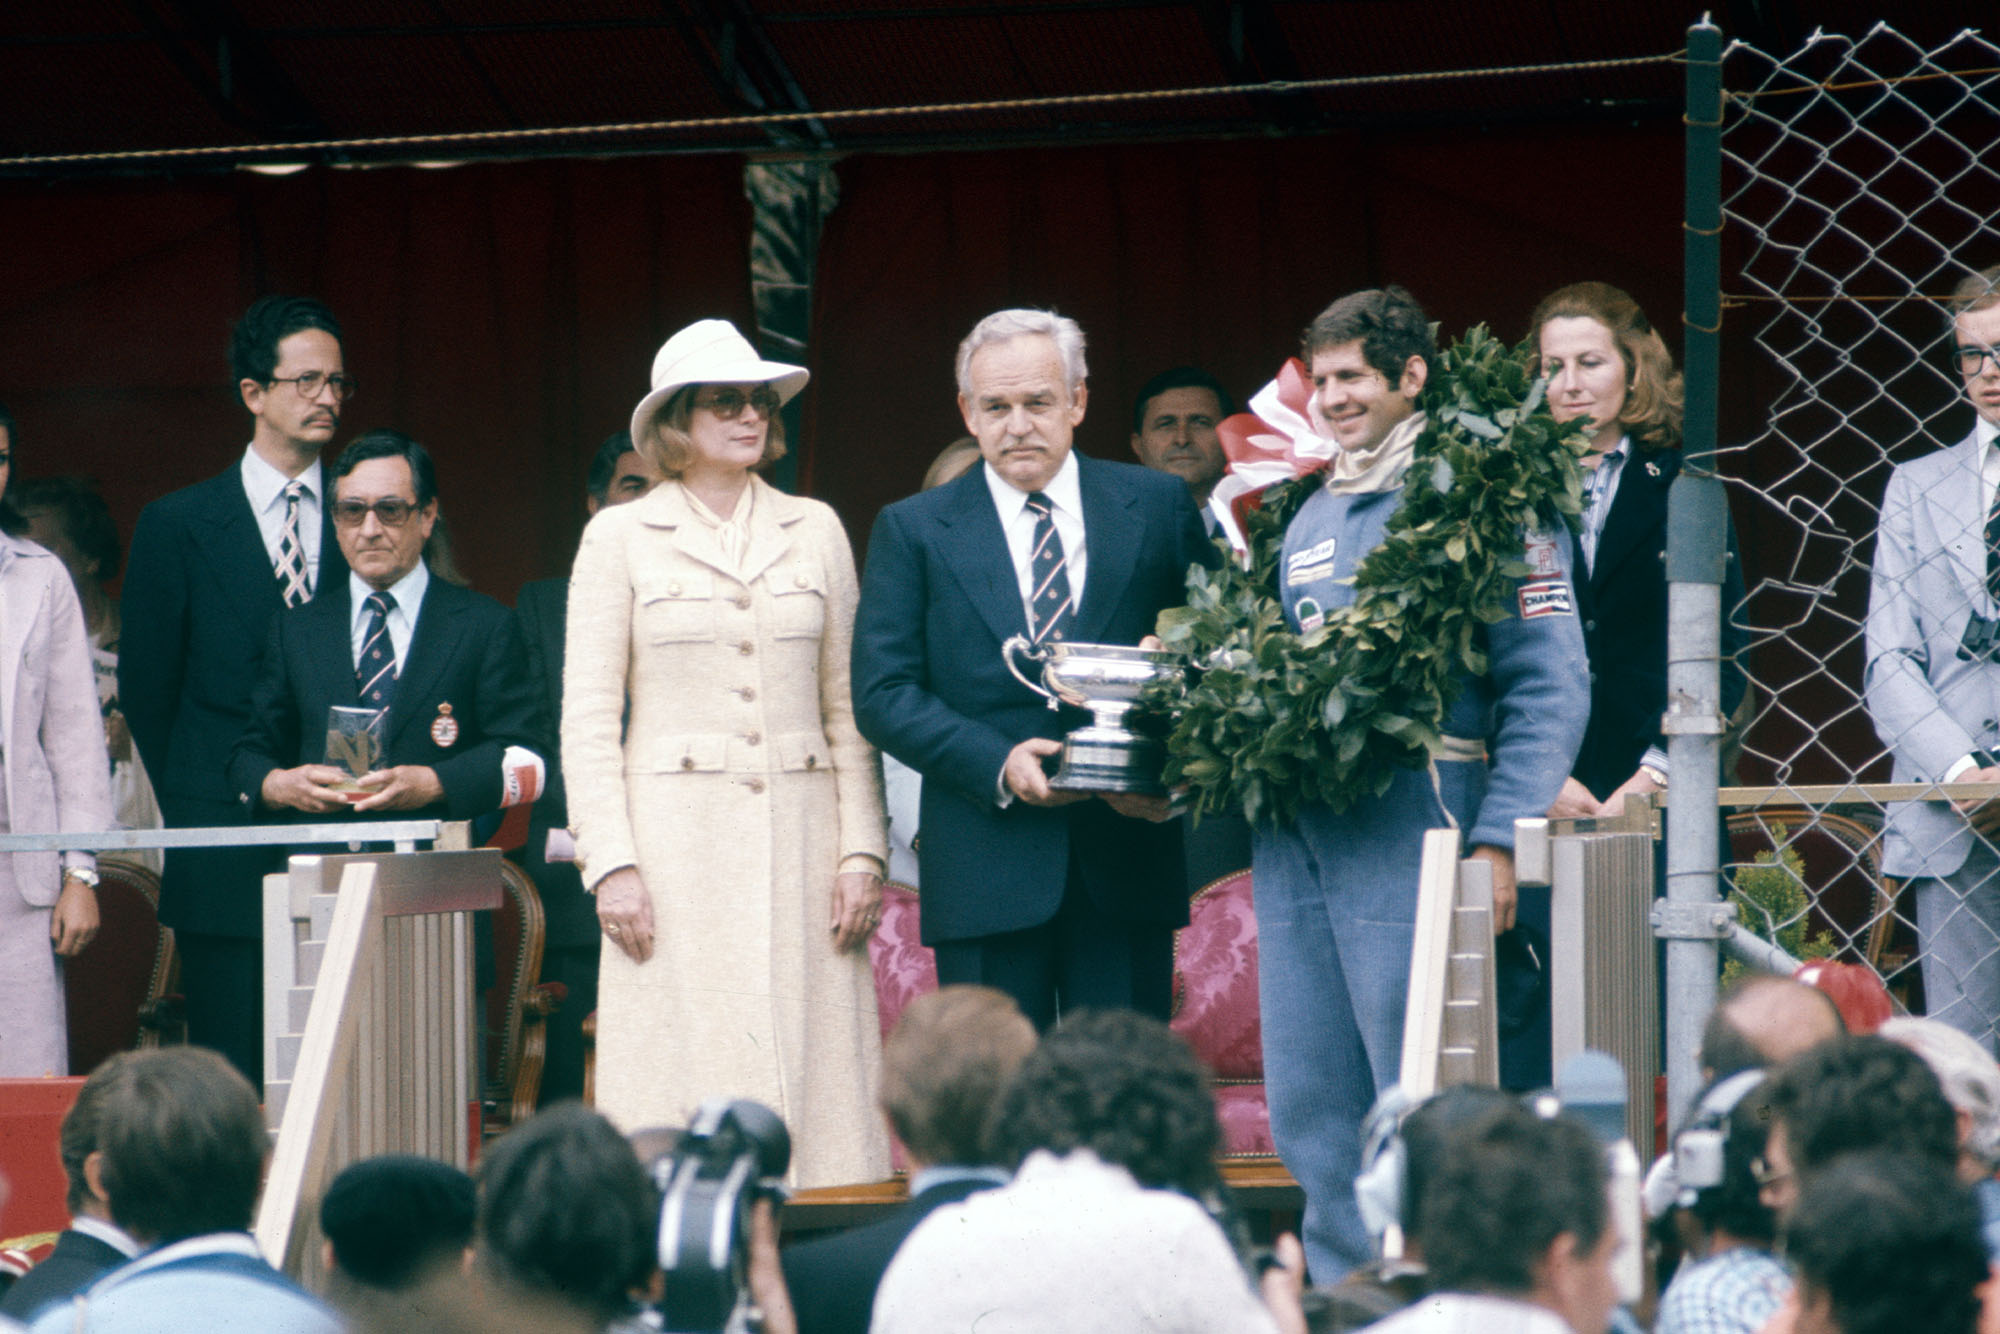 Jody Scheckter (Wolf) stands on the podium after winning the 1977 Monaco Grand Prix.